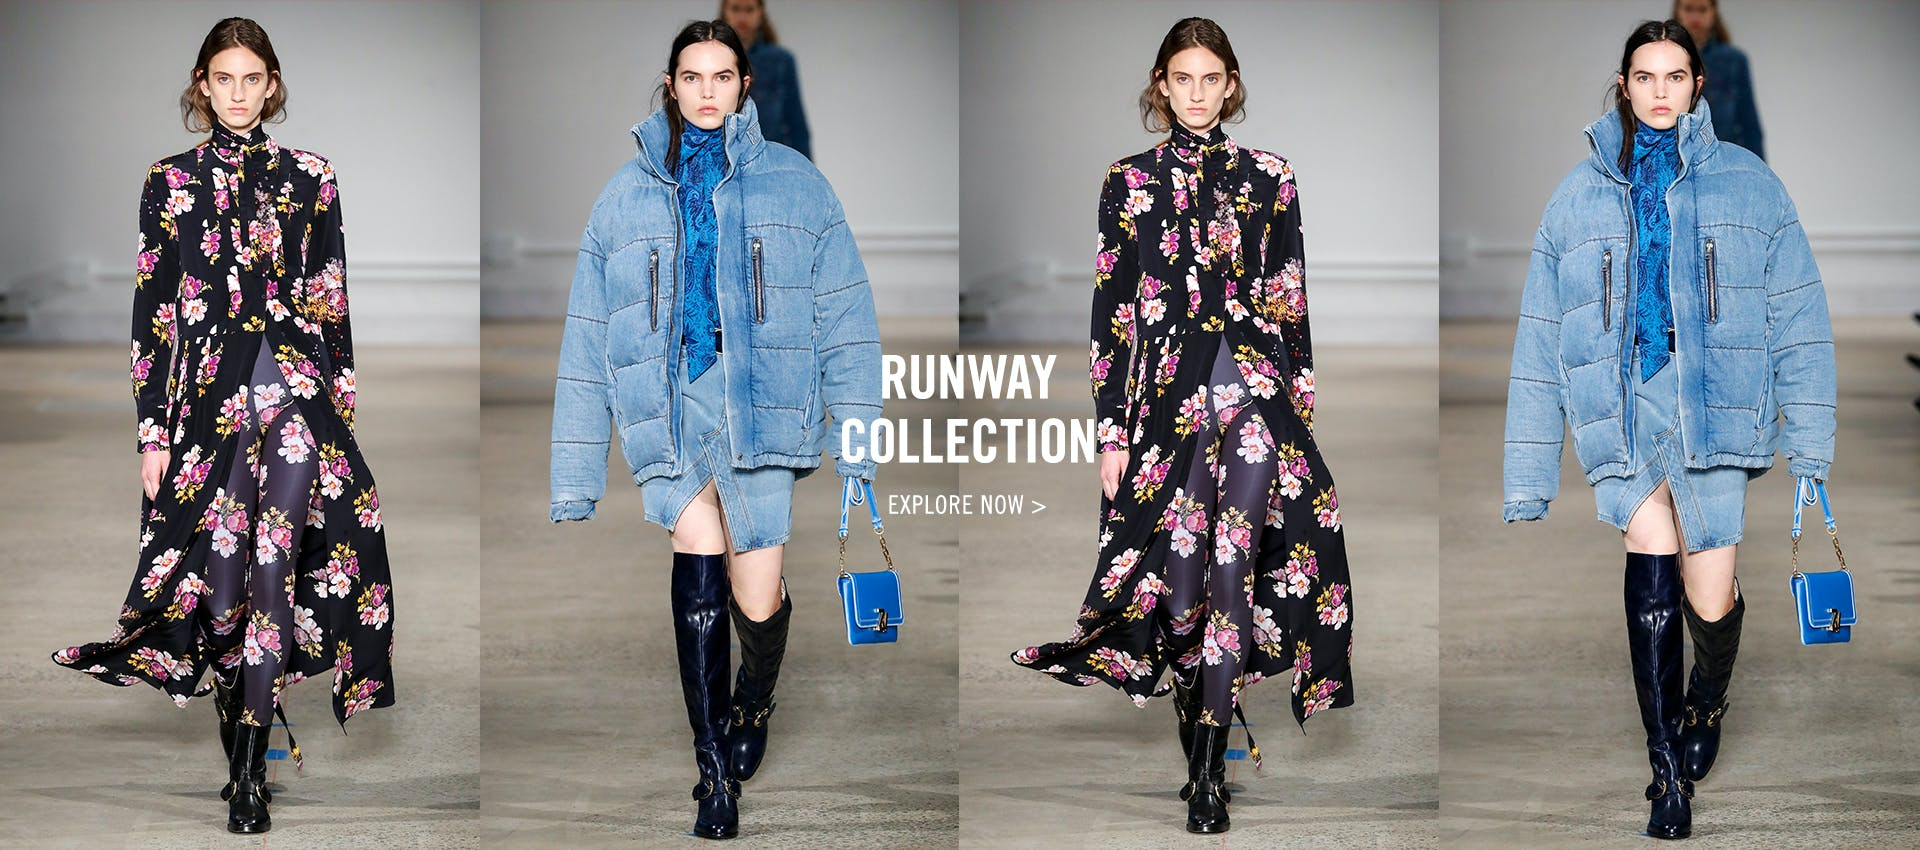 Runway Collection - fw20 new collection HP Banner